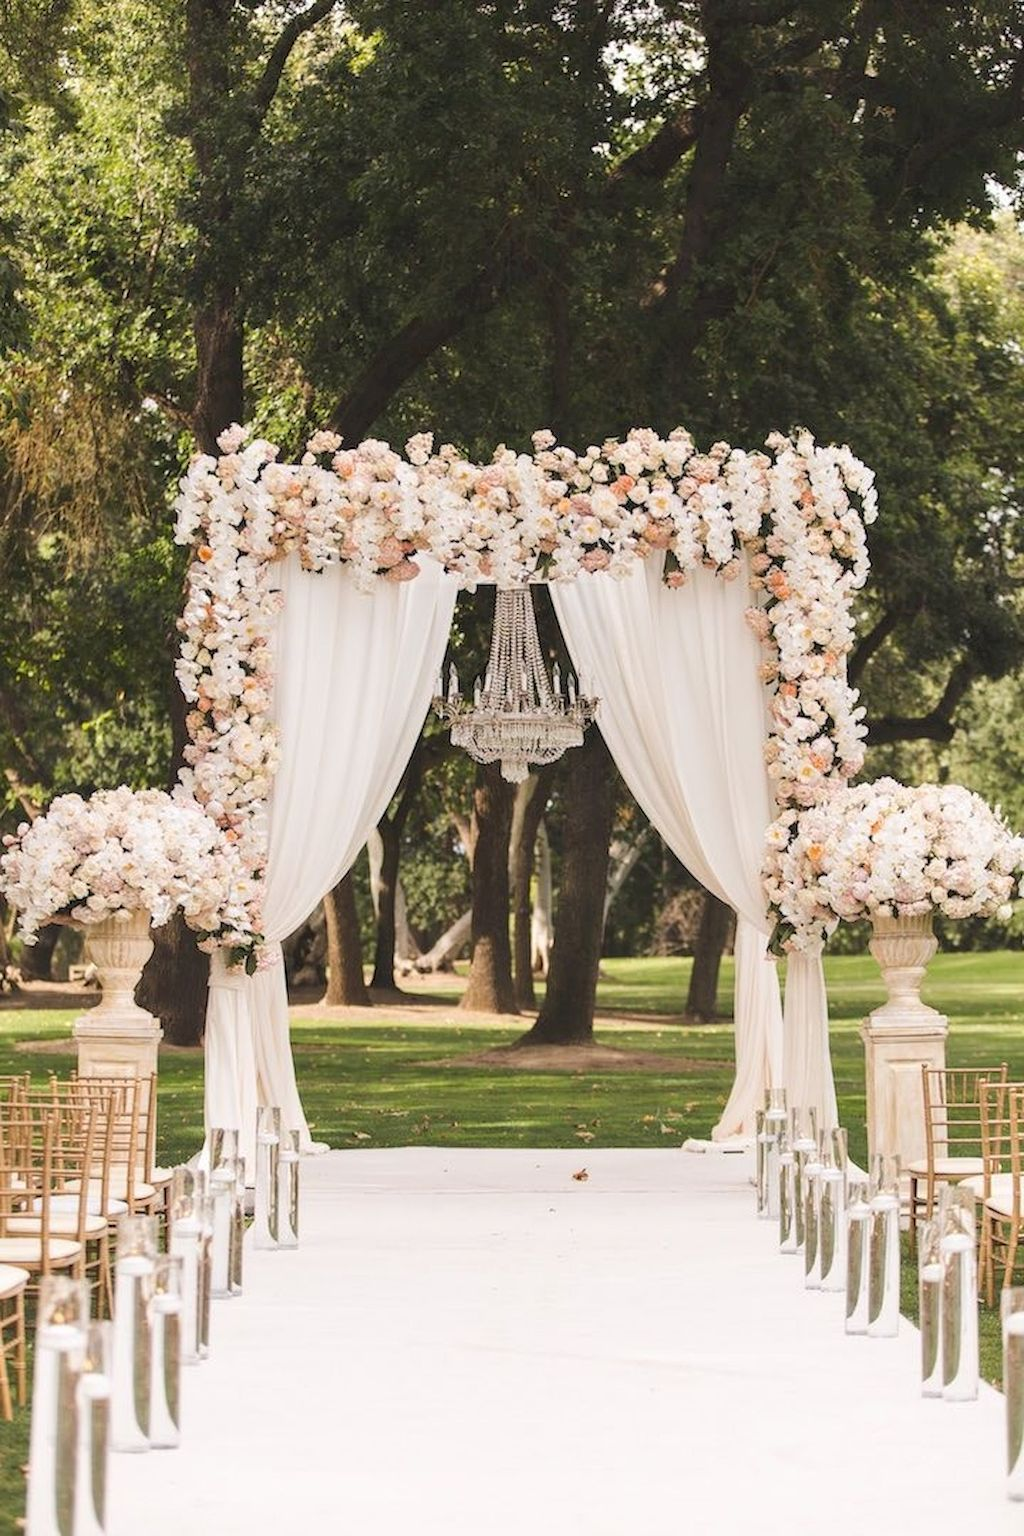 48 elegant outdoor wedding decor ideas on a budget wedding gorgeous 48 elegant outdoor wedding decor ideas on a budget httpsbitecloth junglespirit Gallery